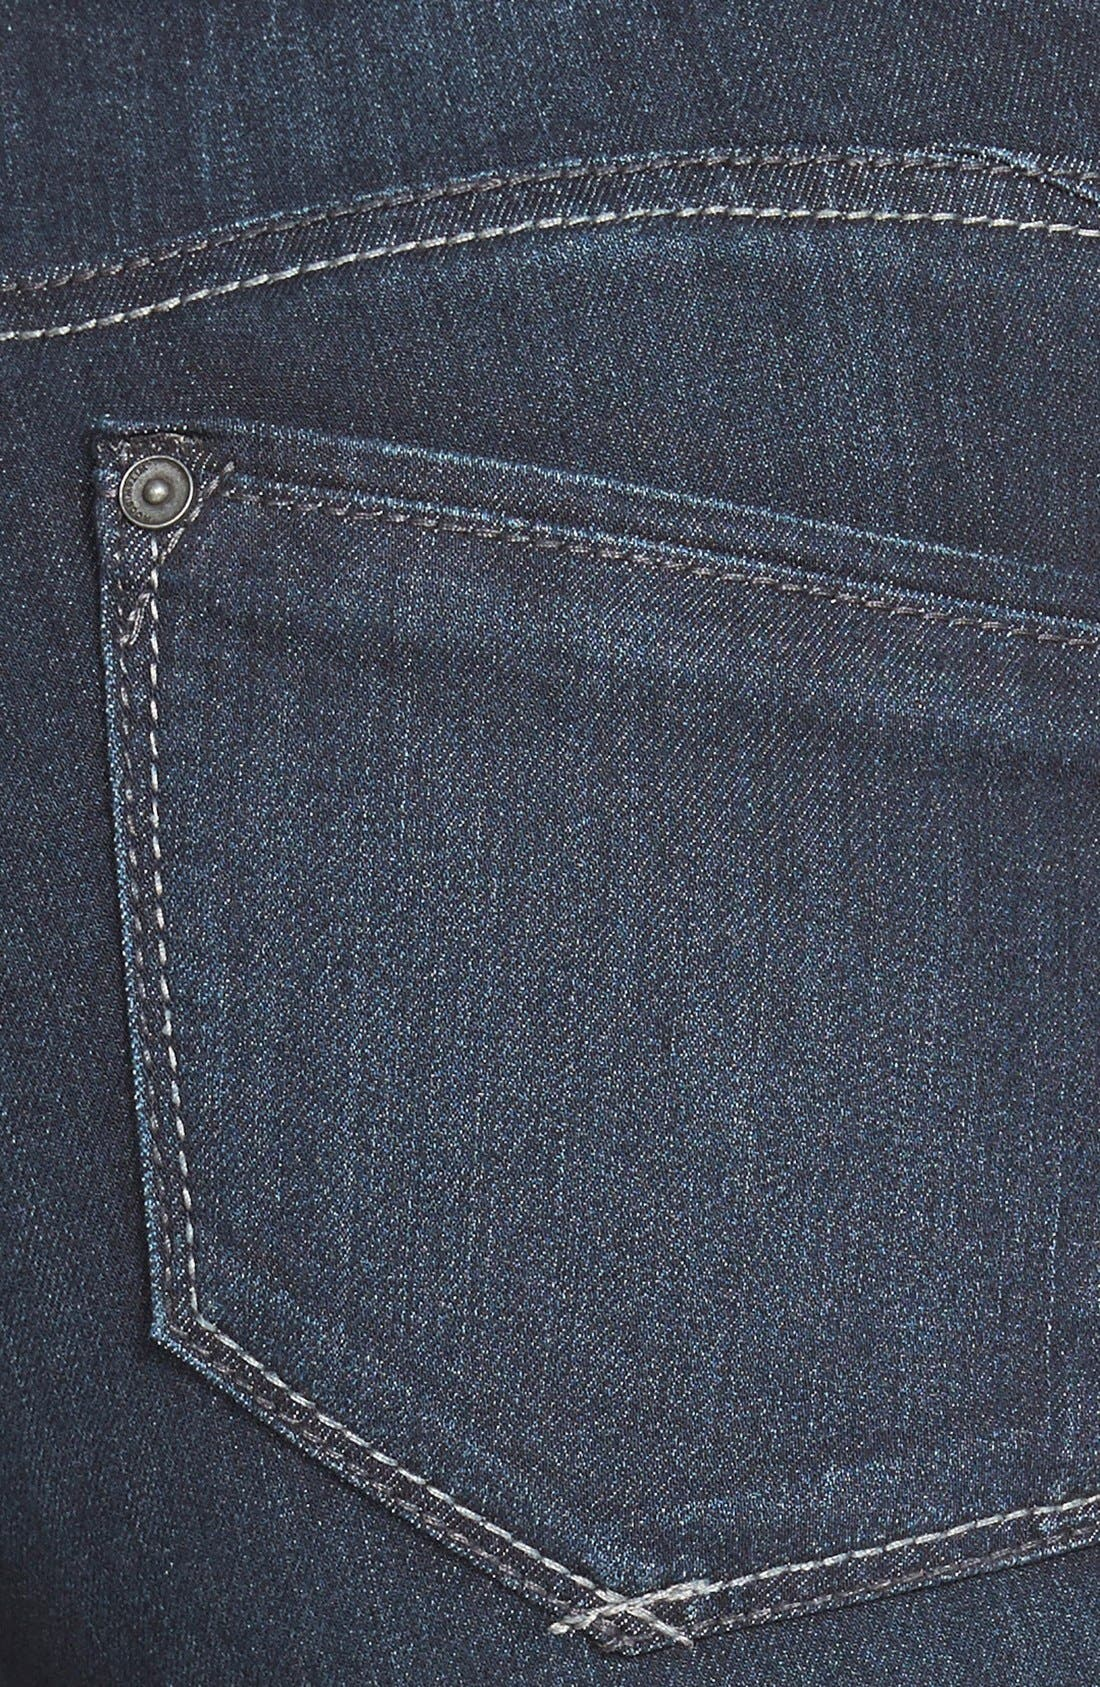 Super Smooth Stretch Denim Skinny Jeans,                             Alternate thumbnail 4, color,                             Dark Navy